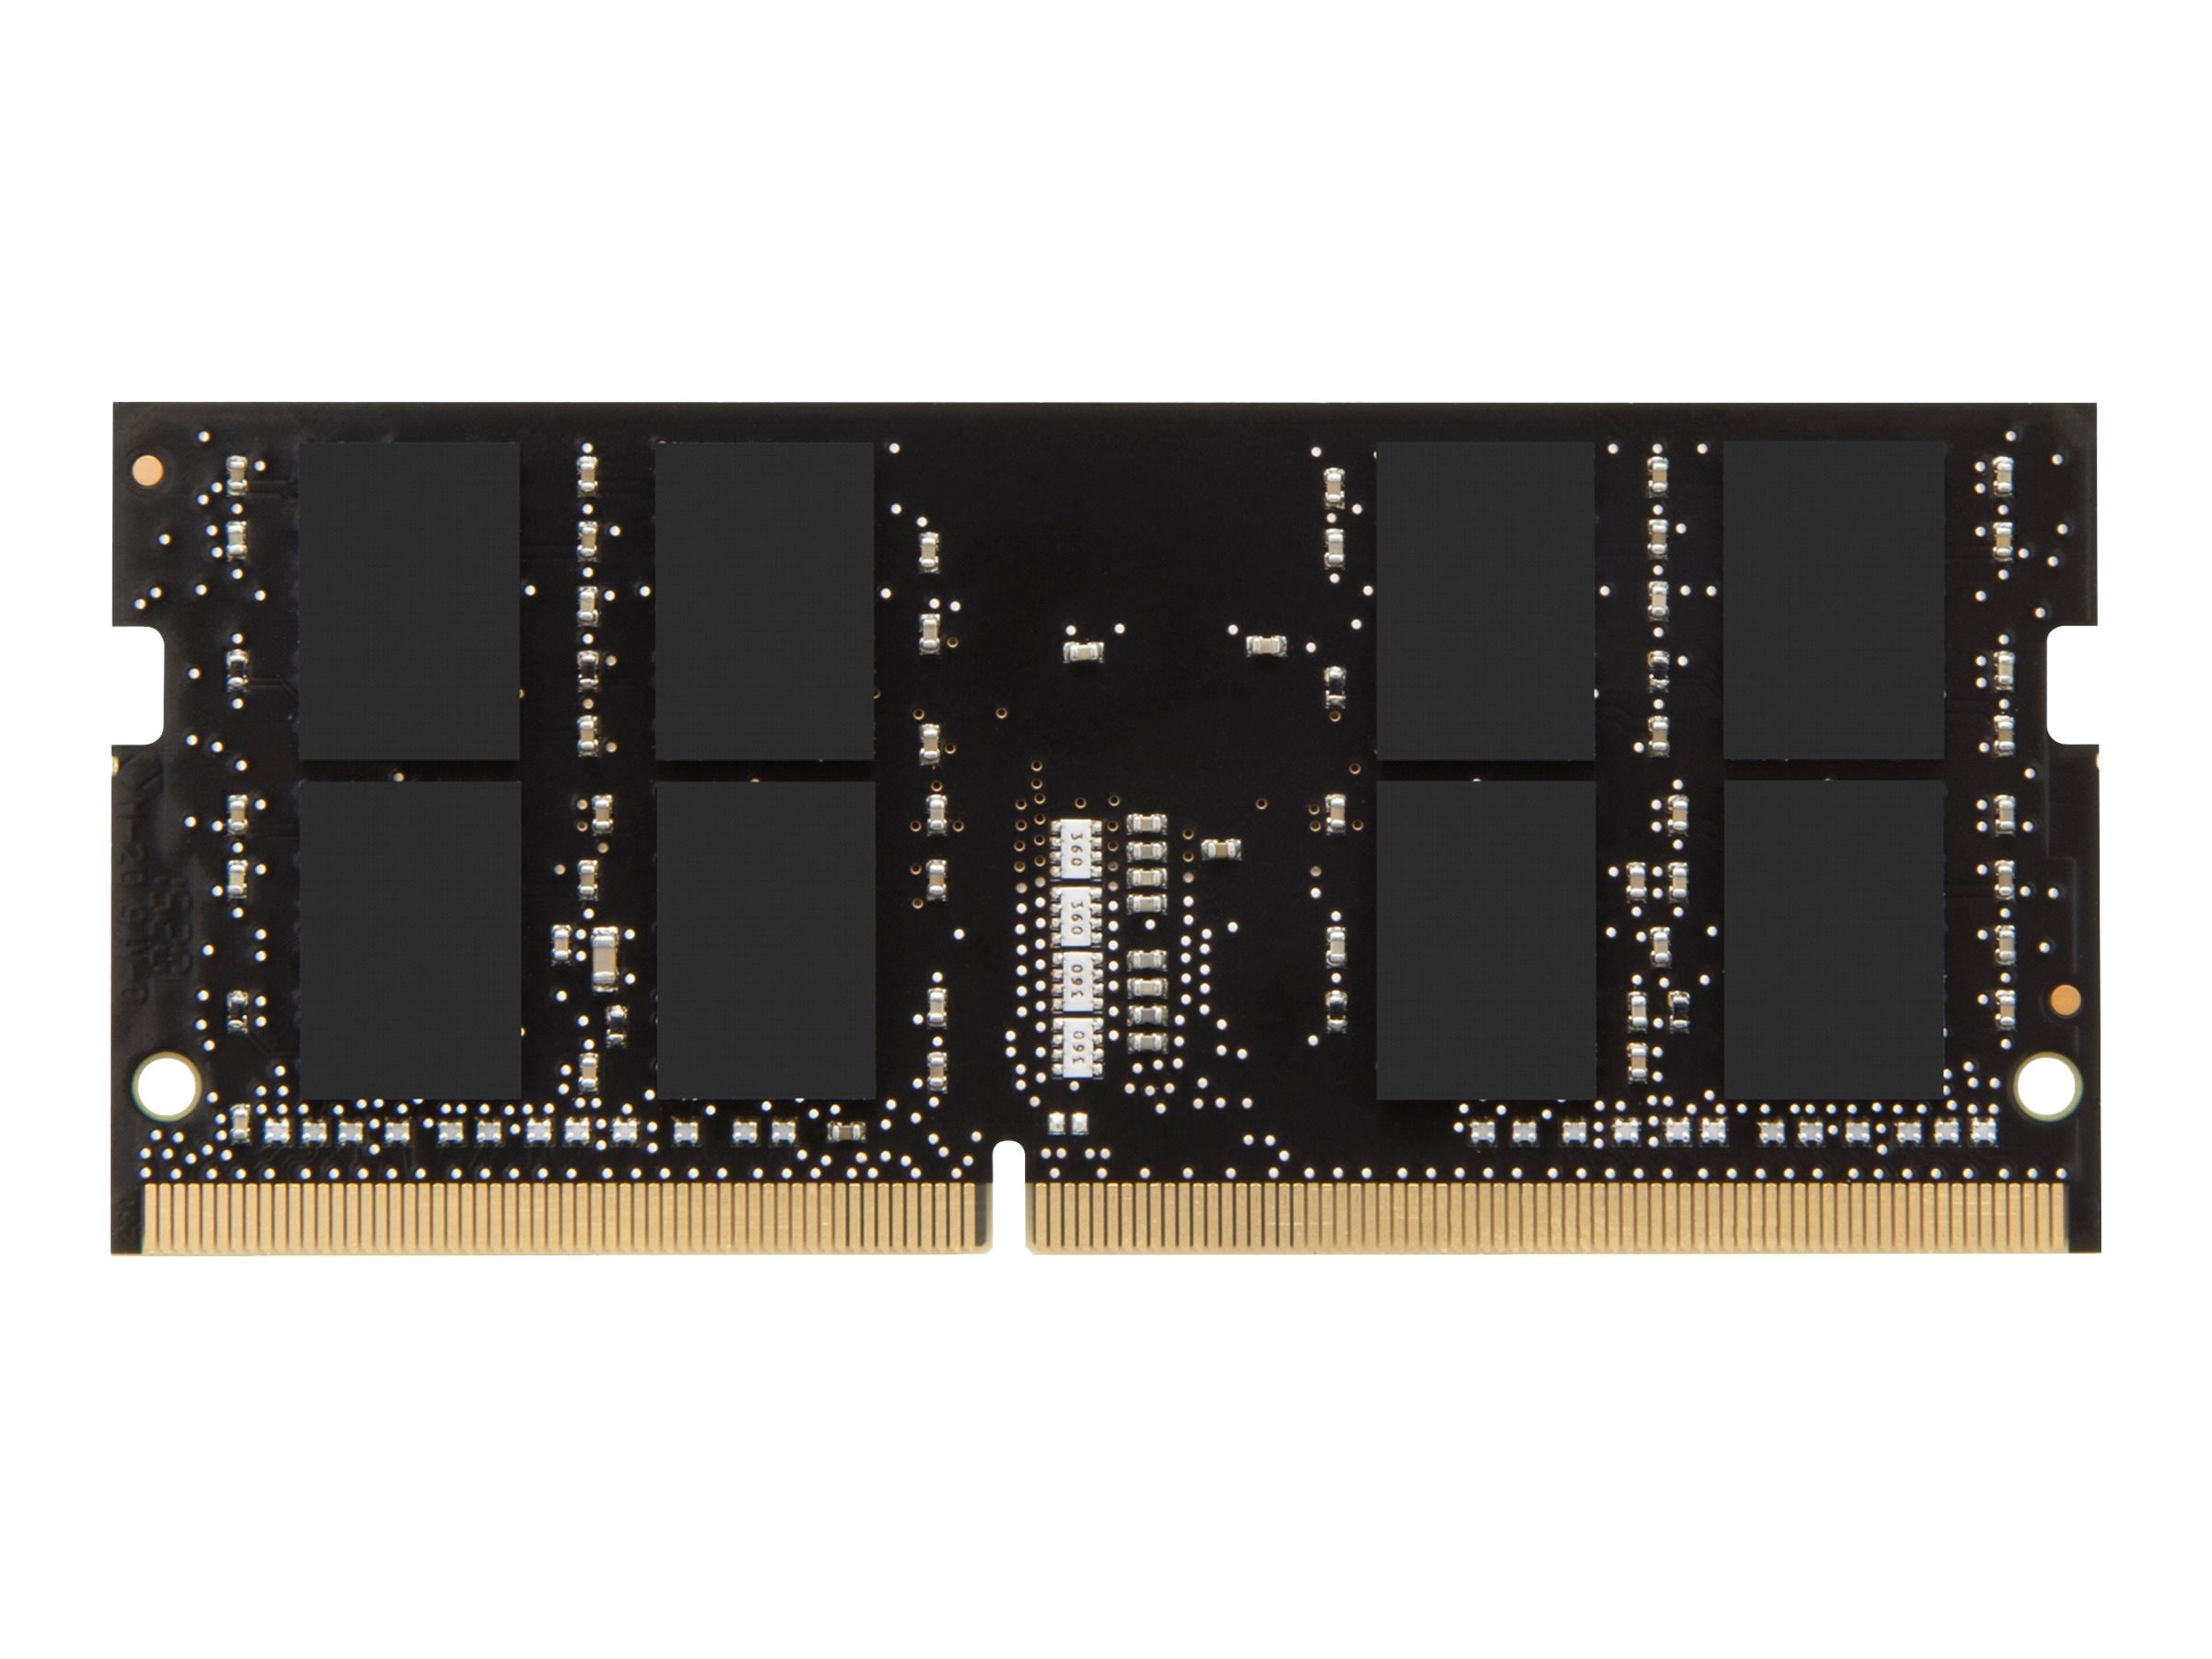 Kingston HX421S13IBK2/16 Image 3